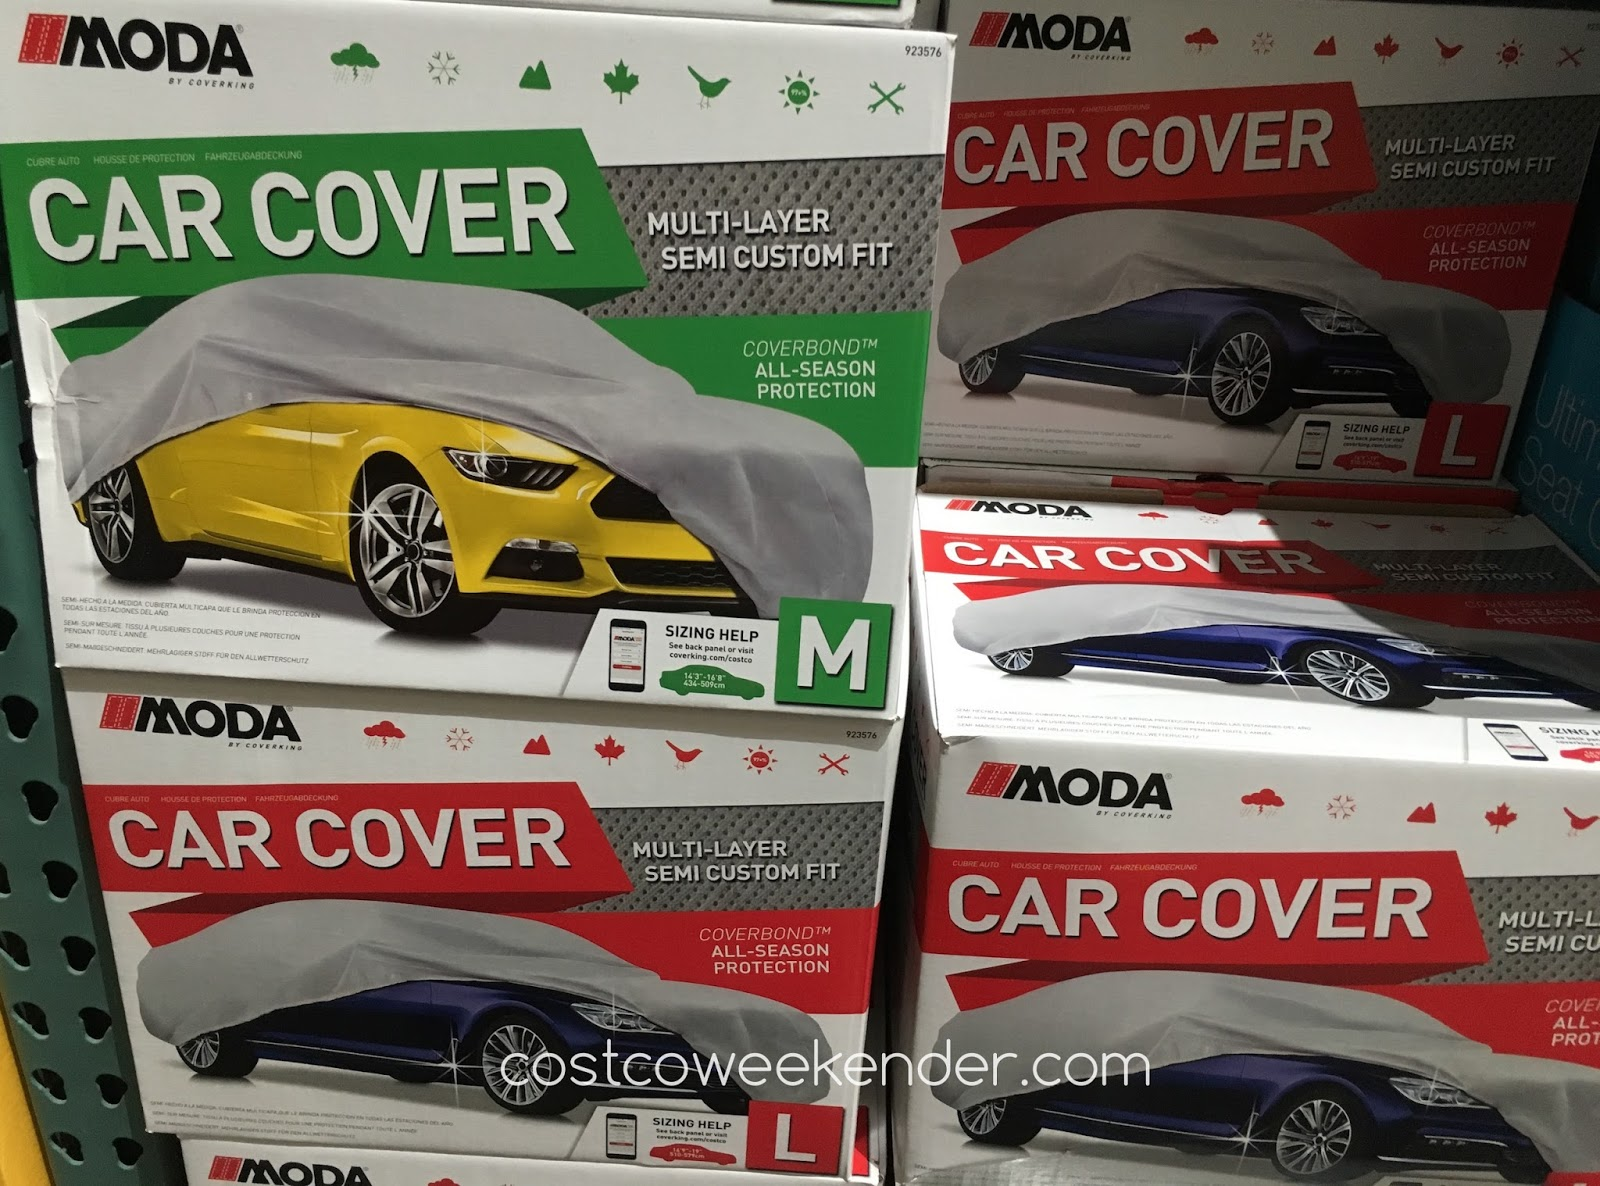 Moda Car Covers Costco